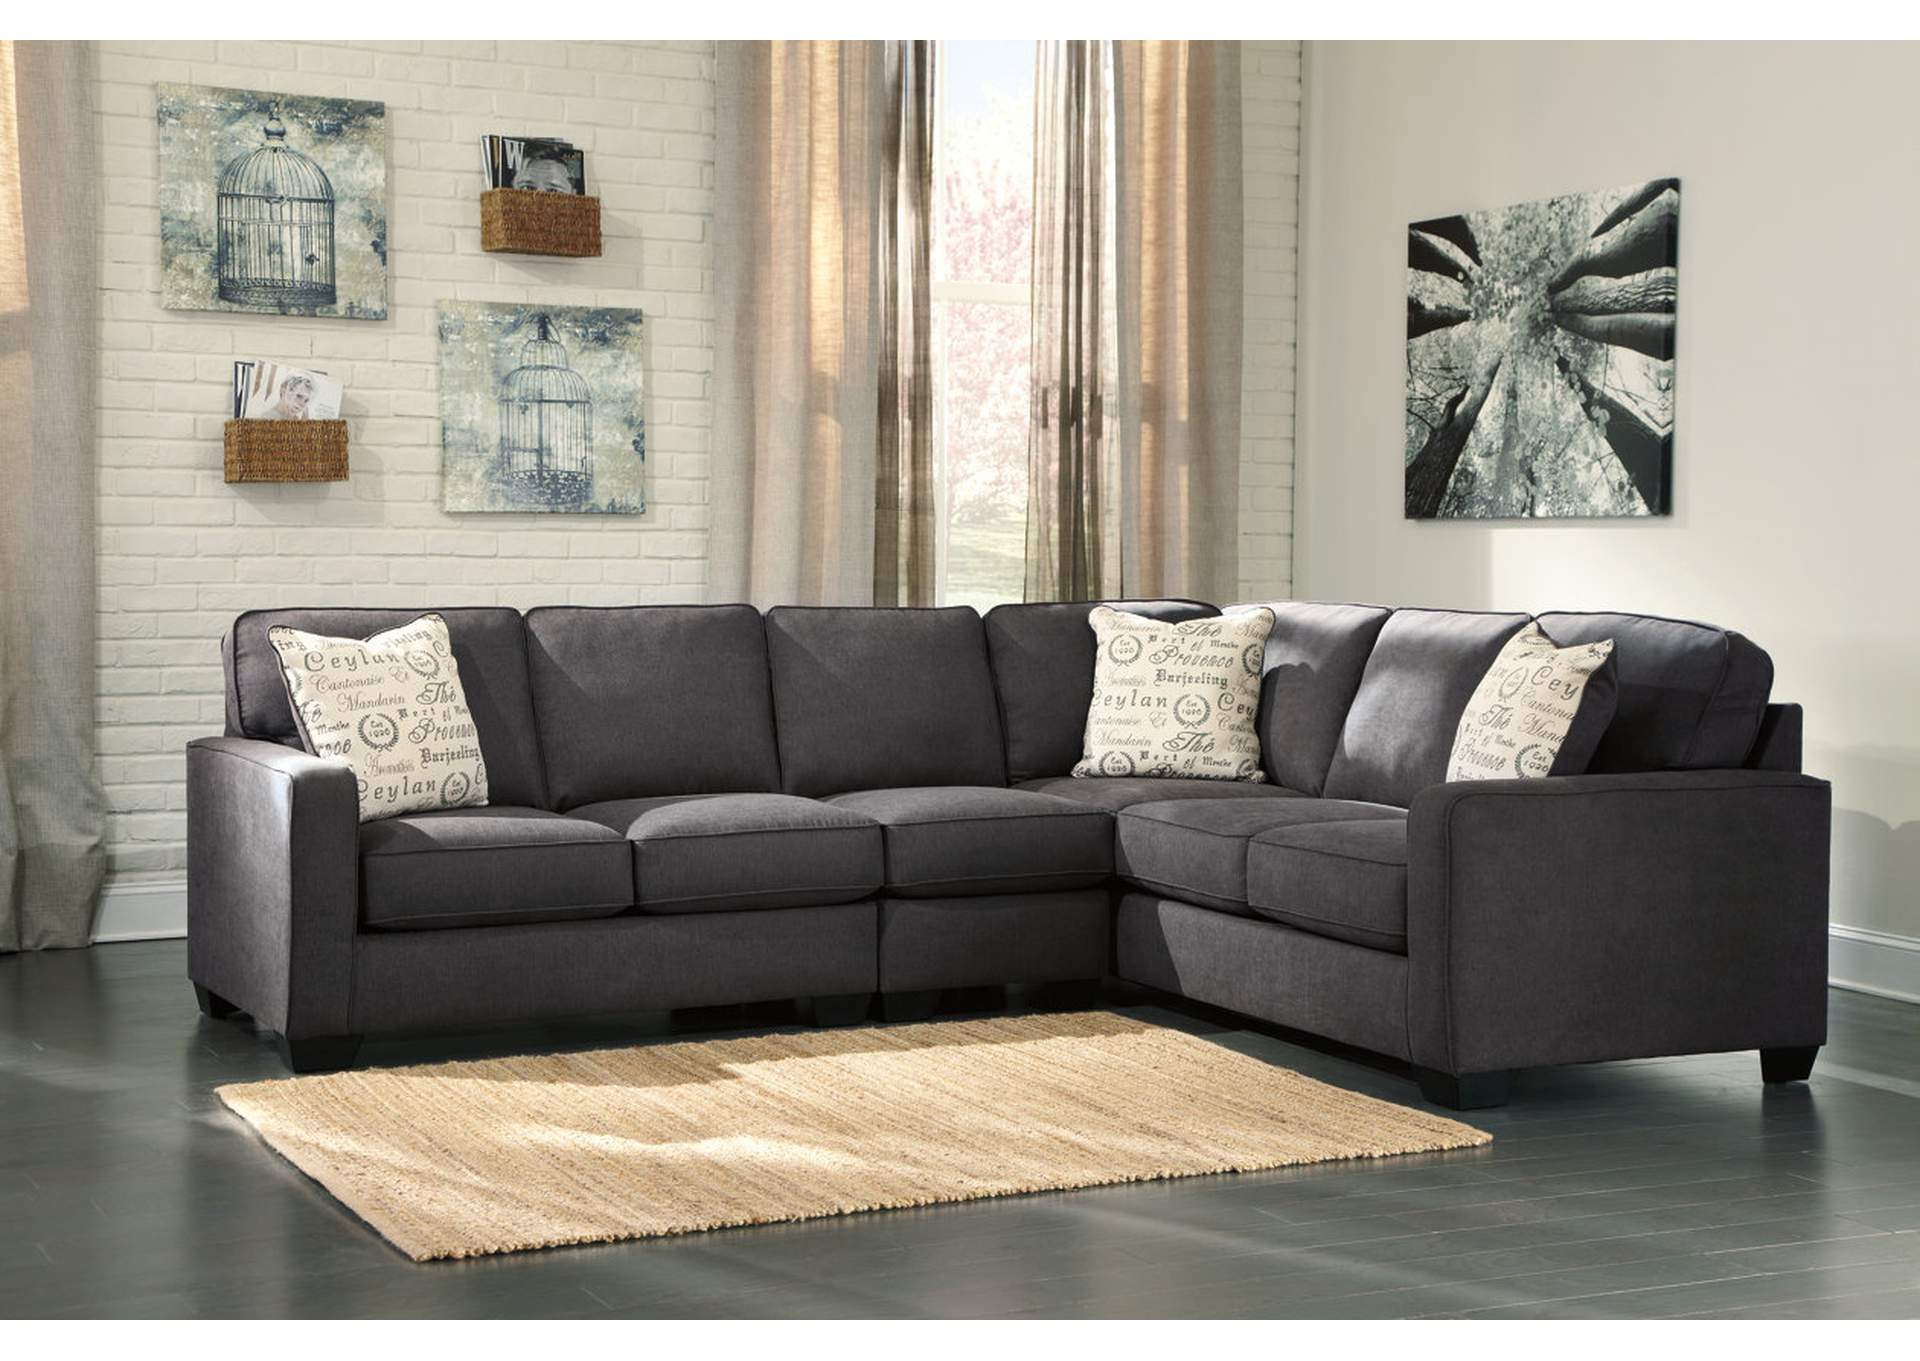 Alenya Charcoal Right Facing Extended Sectional,Signature Design By Ashley